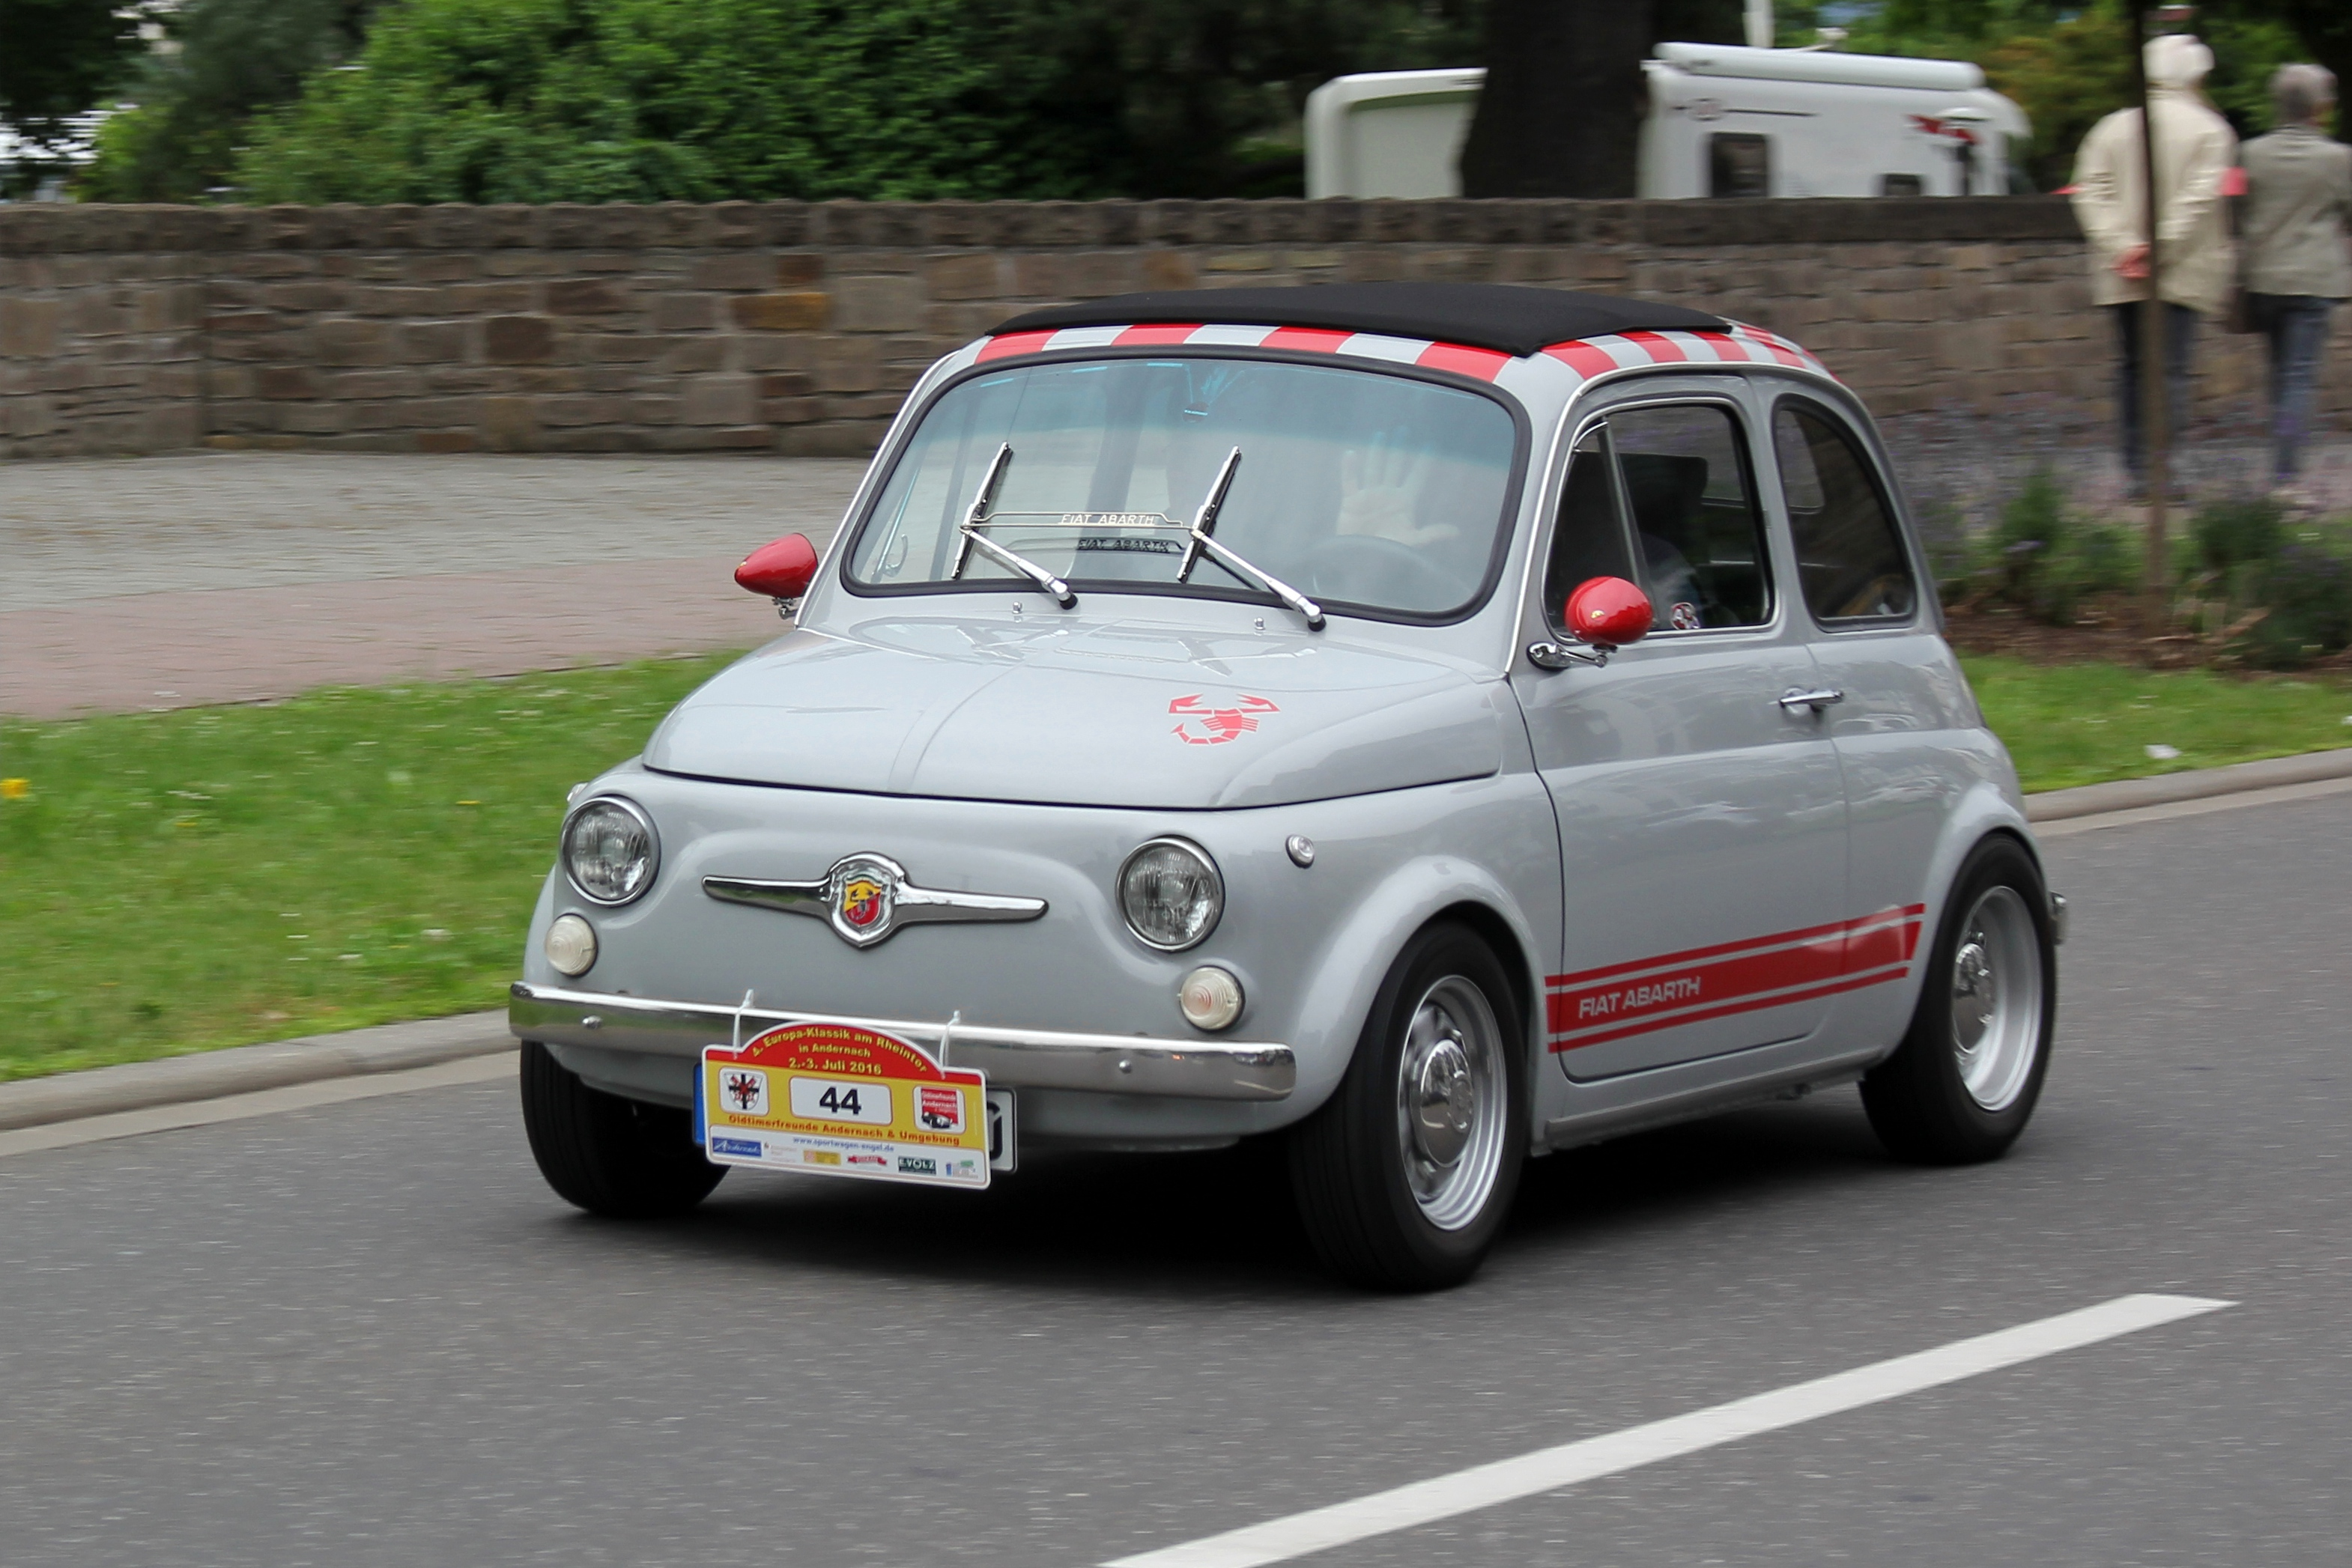 file fiat abarth 595 bj 1972 in fahrt 2016 07 02 sp jpg wikimedia commons. Black Bedroom Furniture Sets. Home Design Ideas